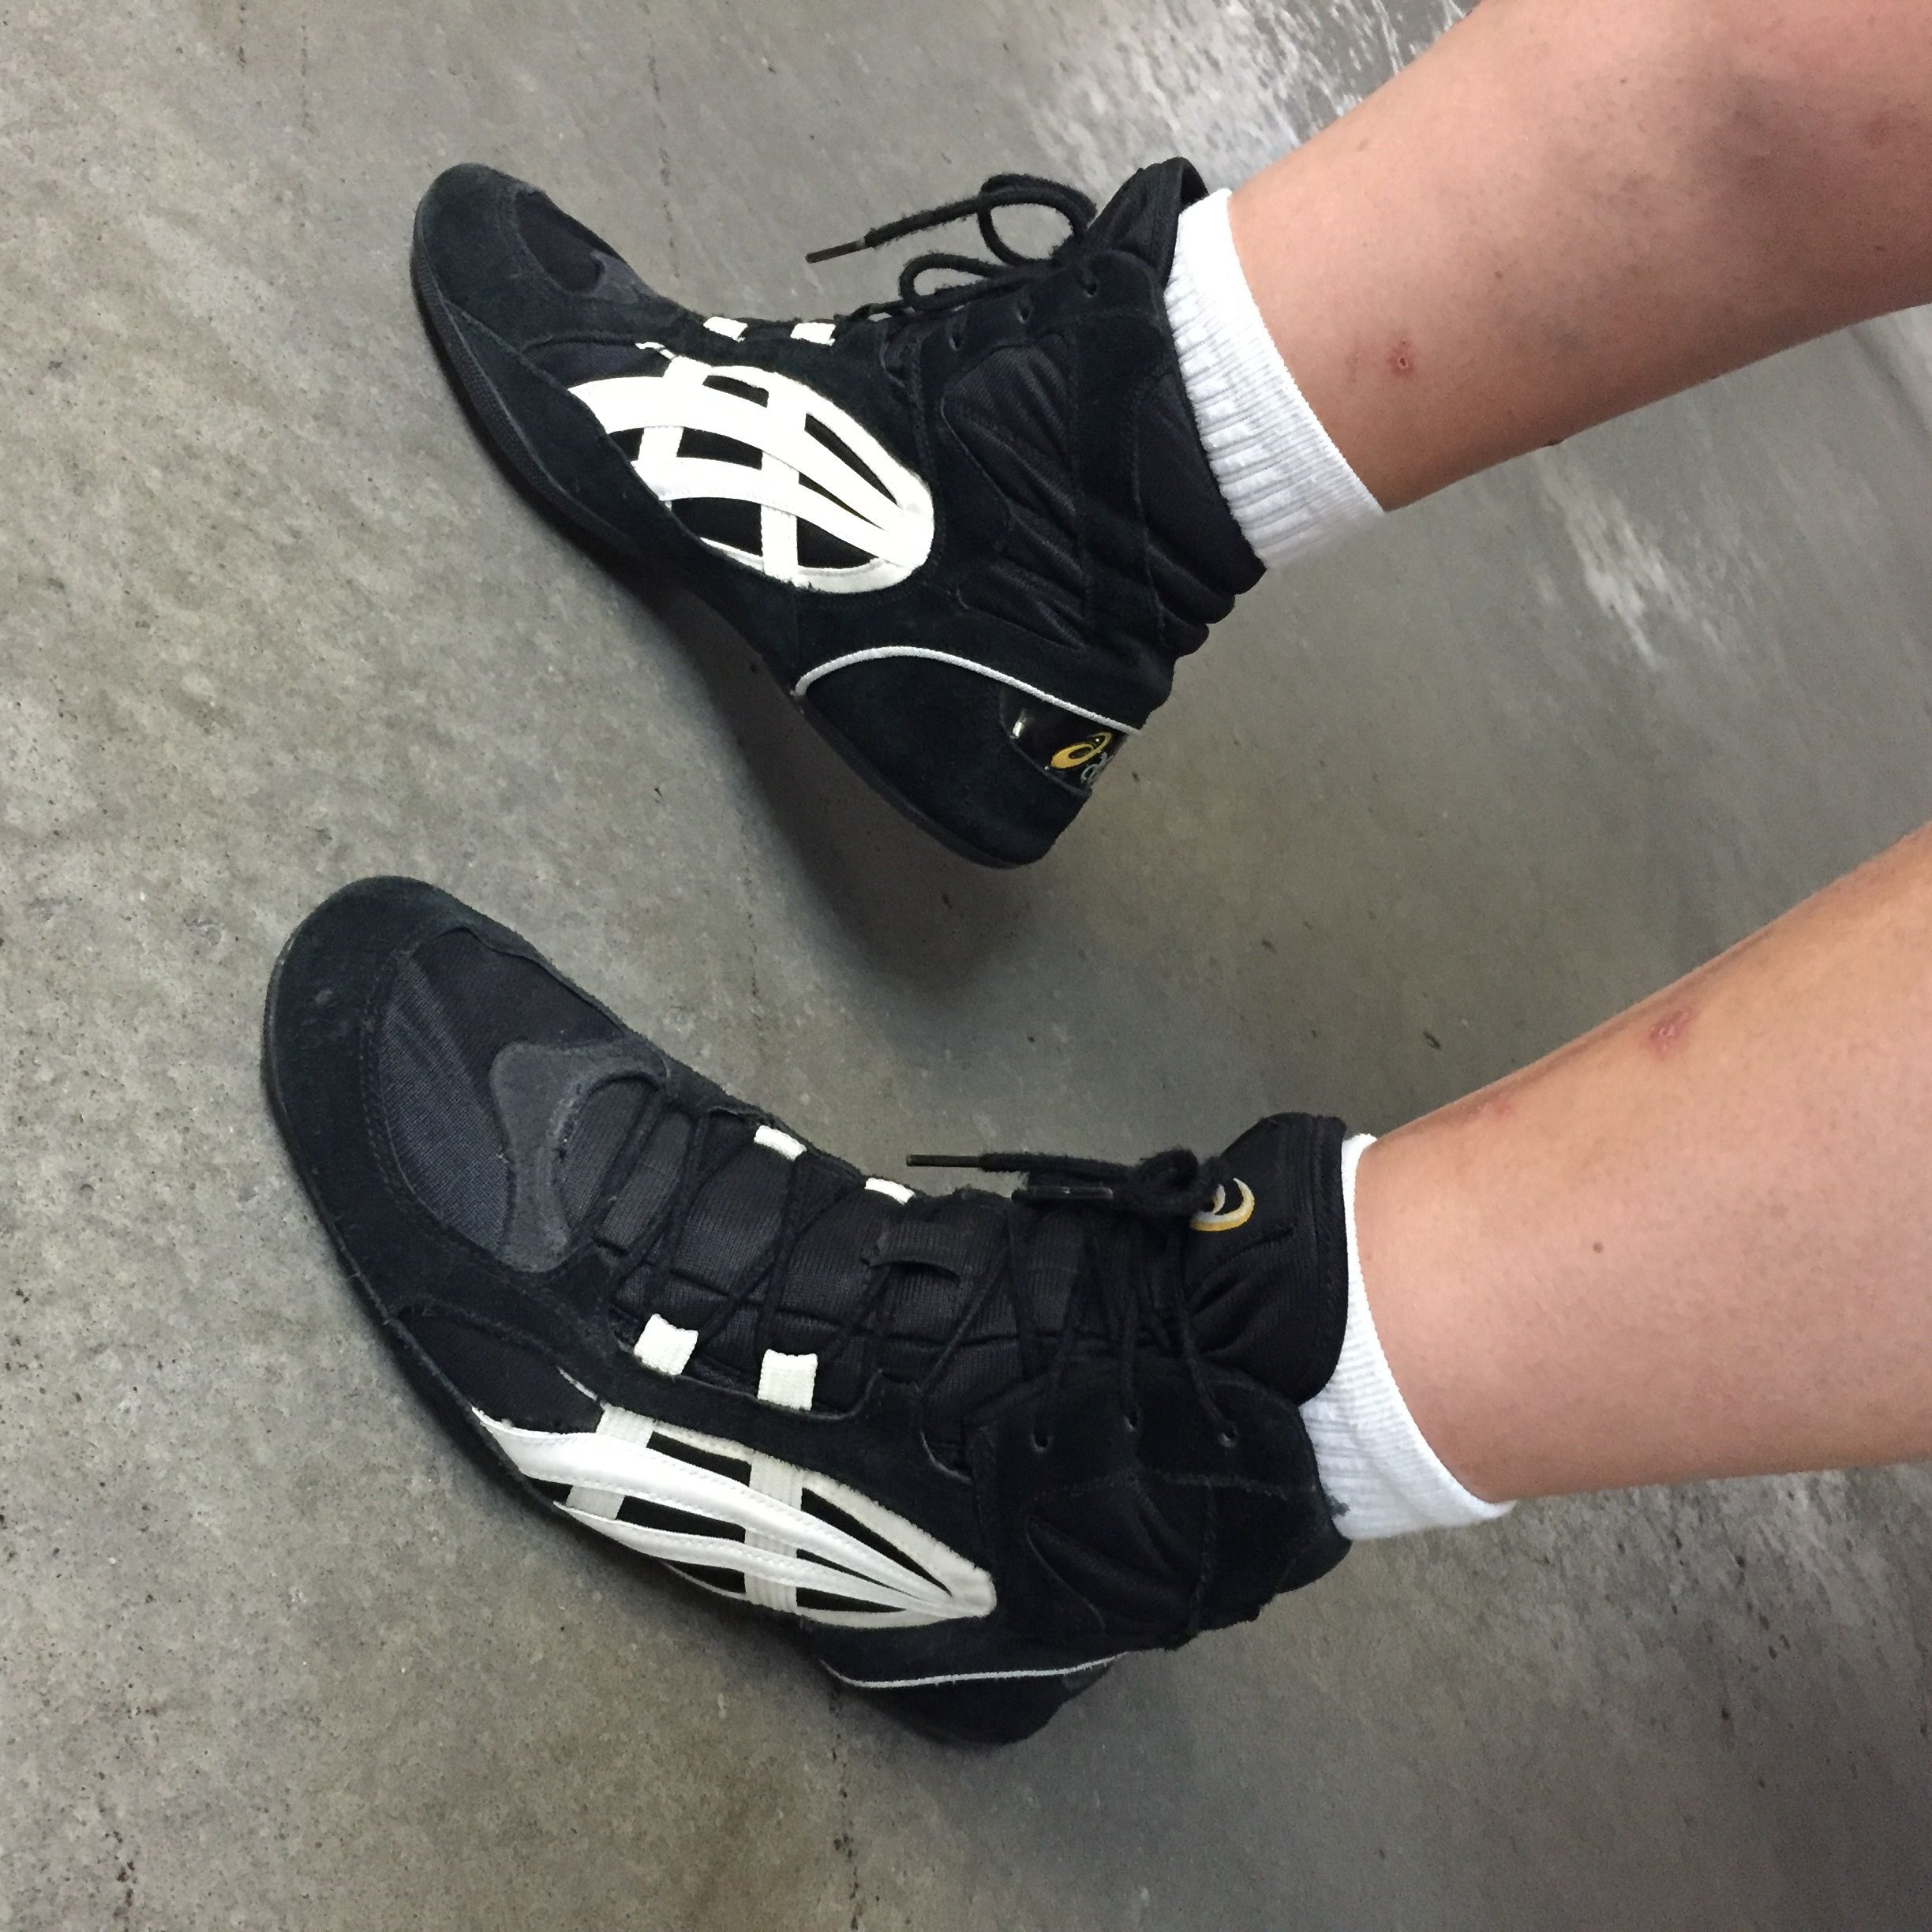 old asics wrestling shoes